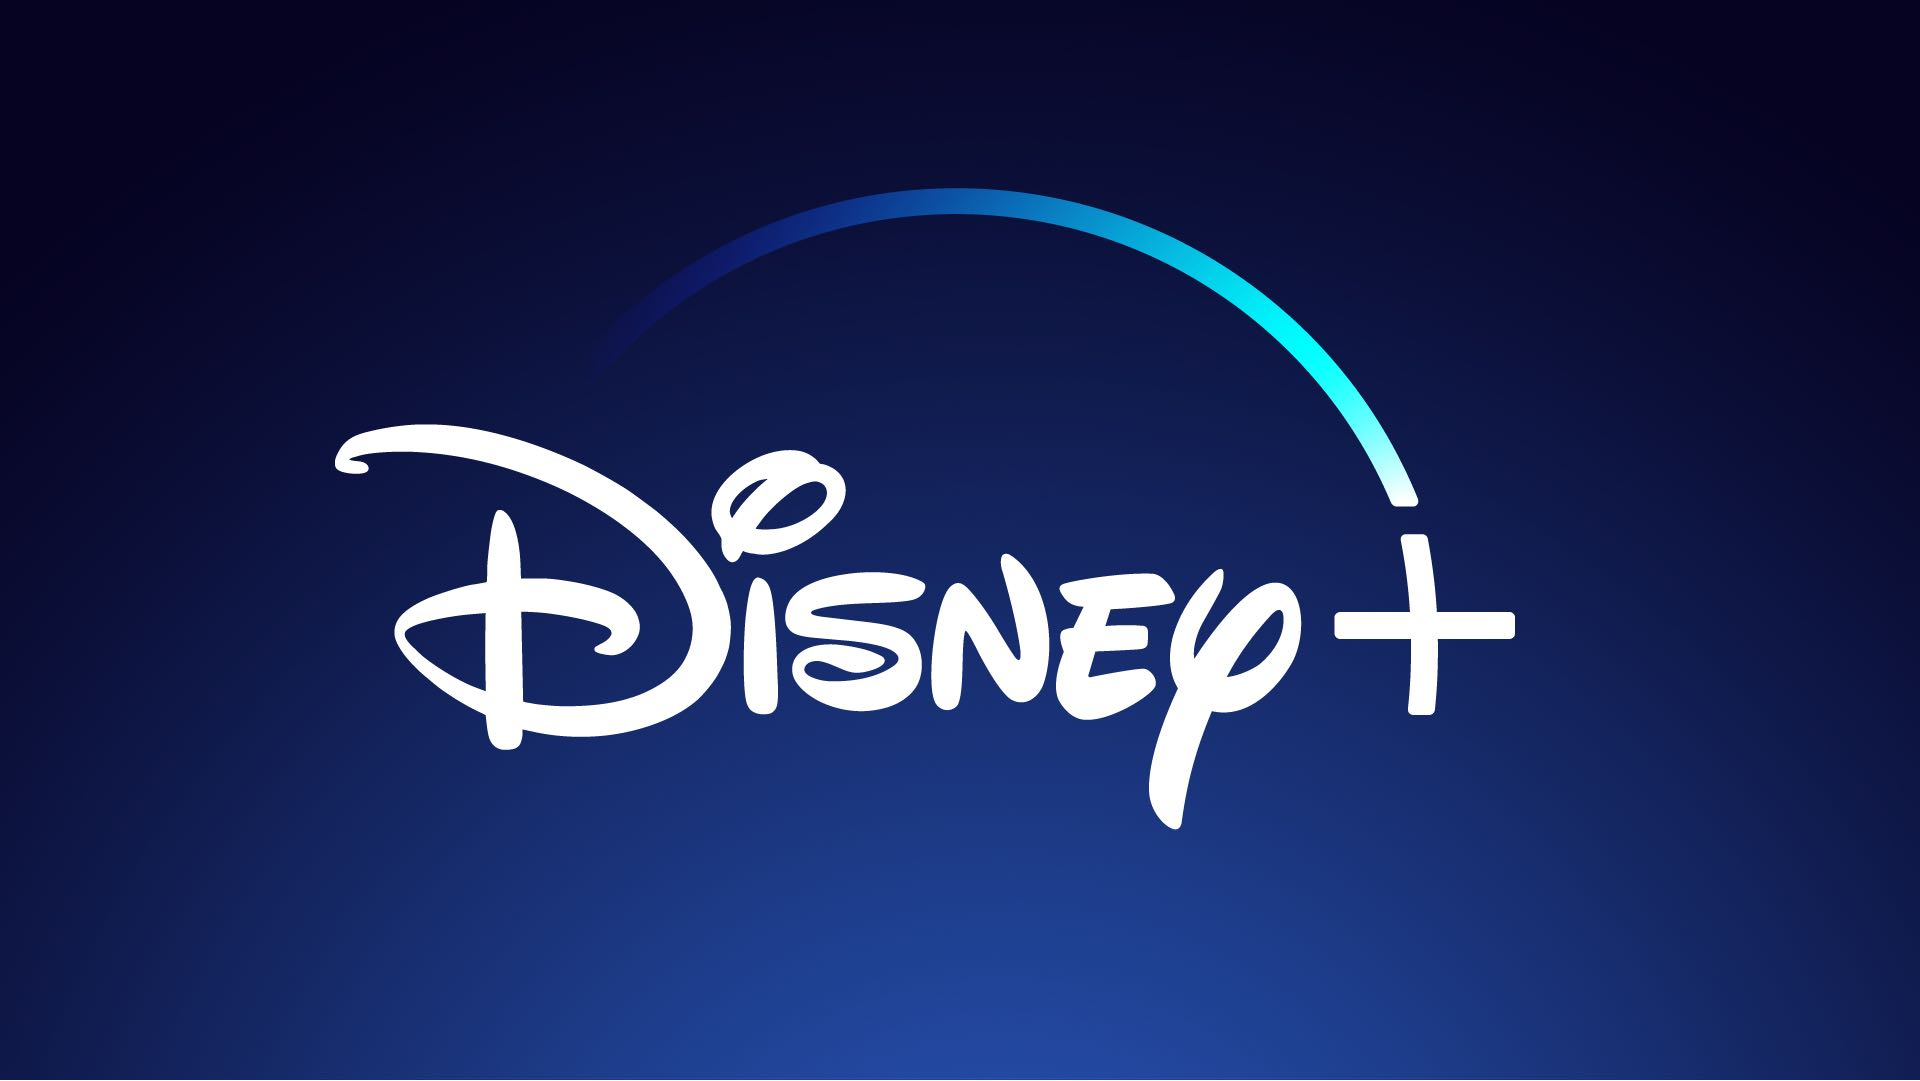 Disney+ announces its impressive launch lineup with over 600 tweets